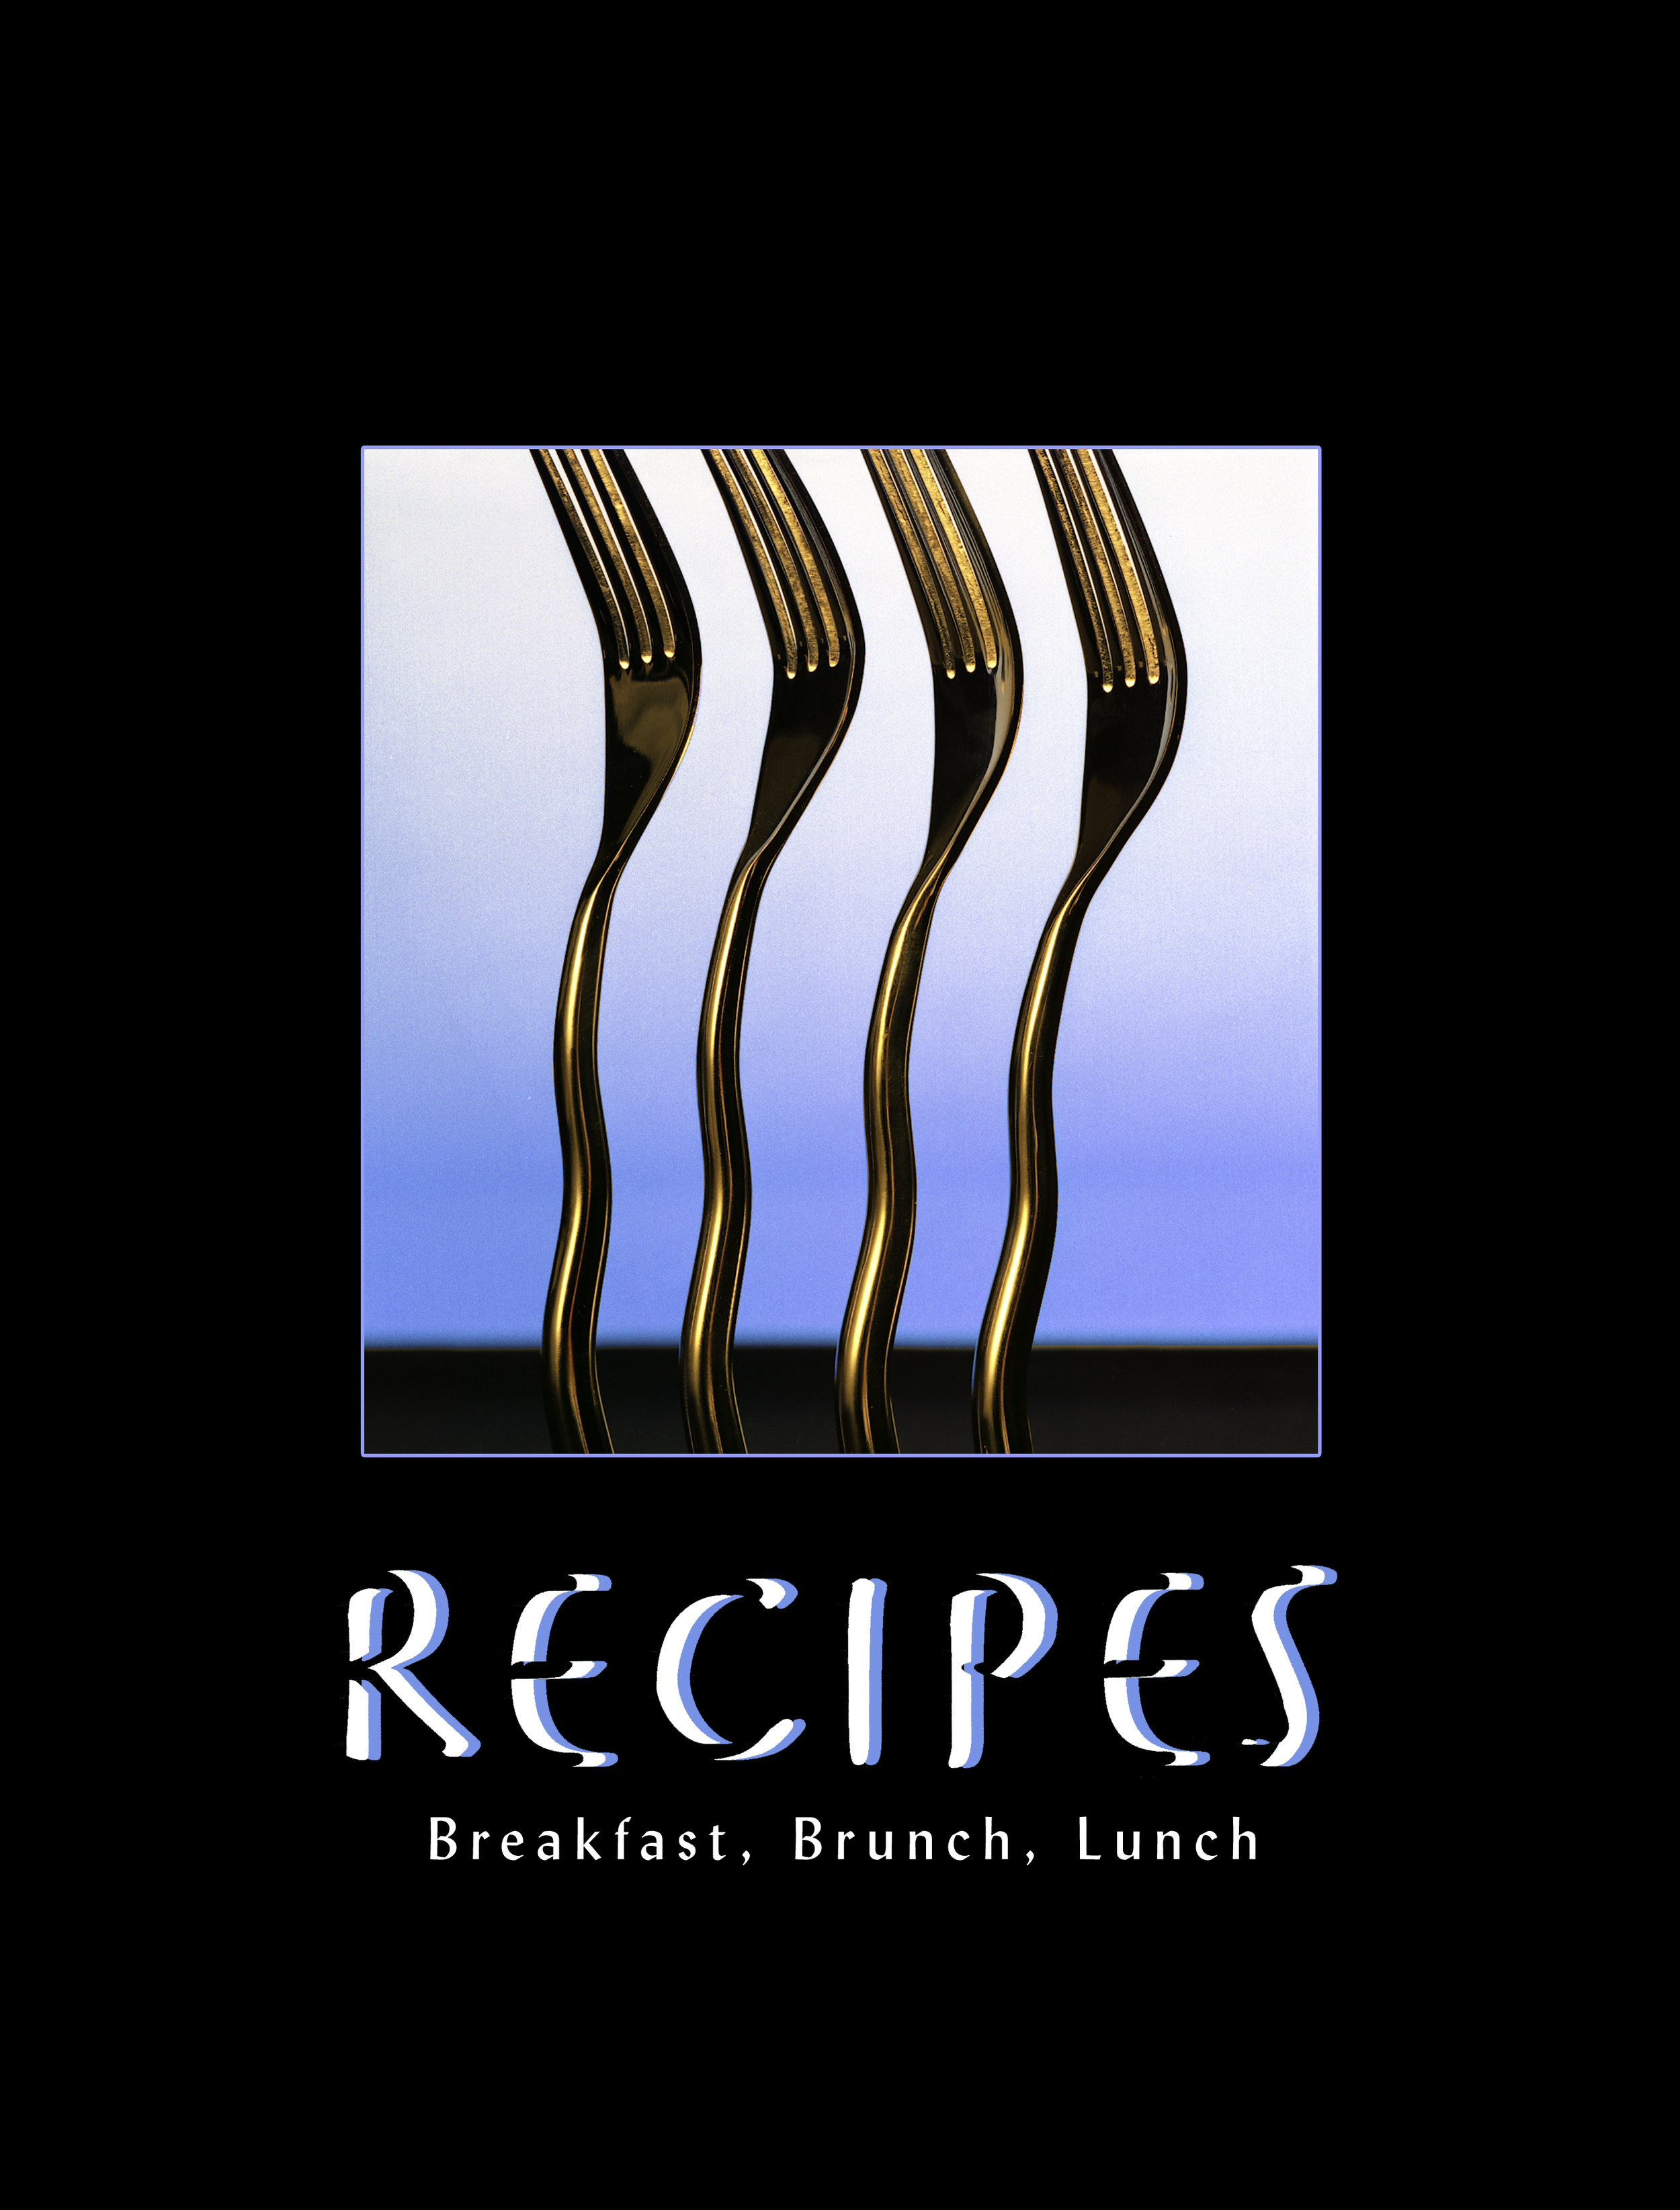 Here at Recipes, our mission is to enhance your palette with the freshest ingredients while surprising you with an American, Asian, Spanish flare, combined with outstanding hospitality.